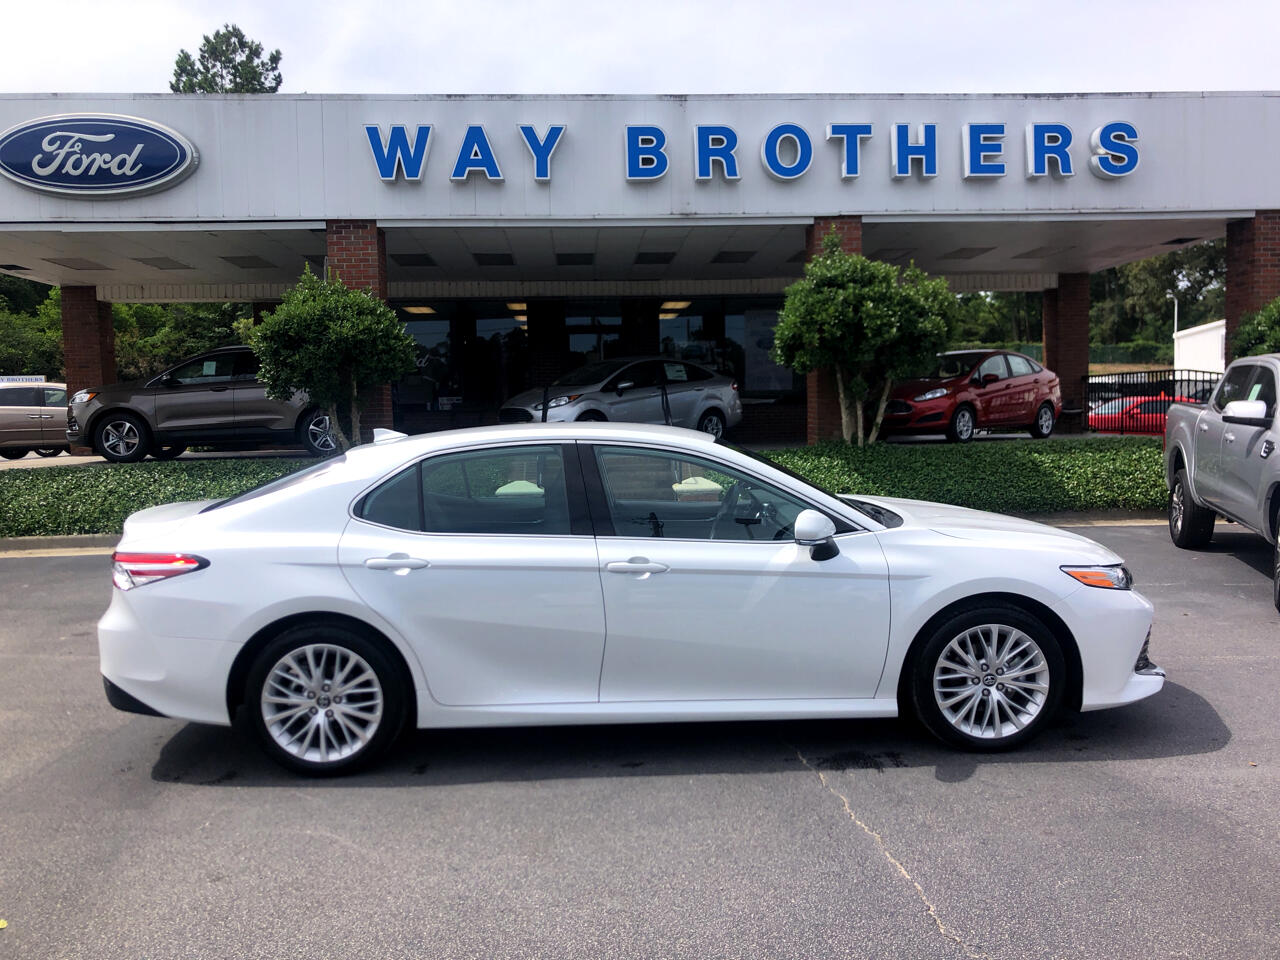 2019 Toyota Camry 2014.5 4dr Sdn I4 Auto XLE (Natl)